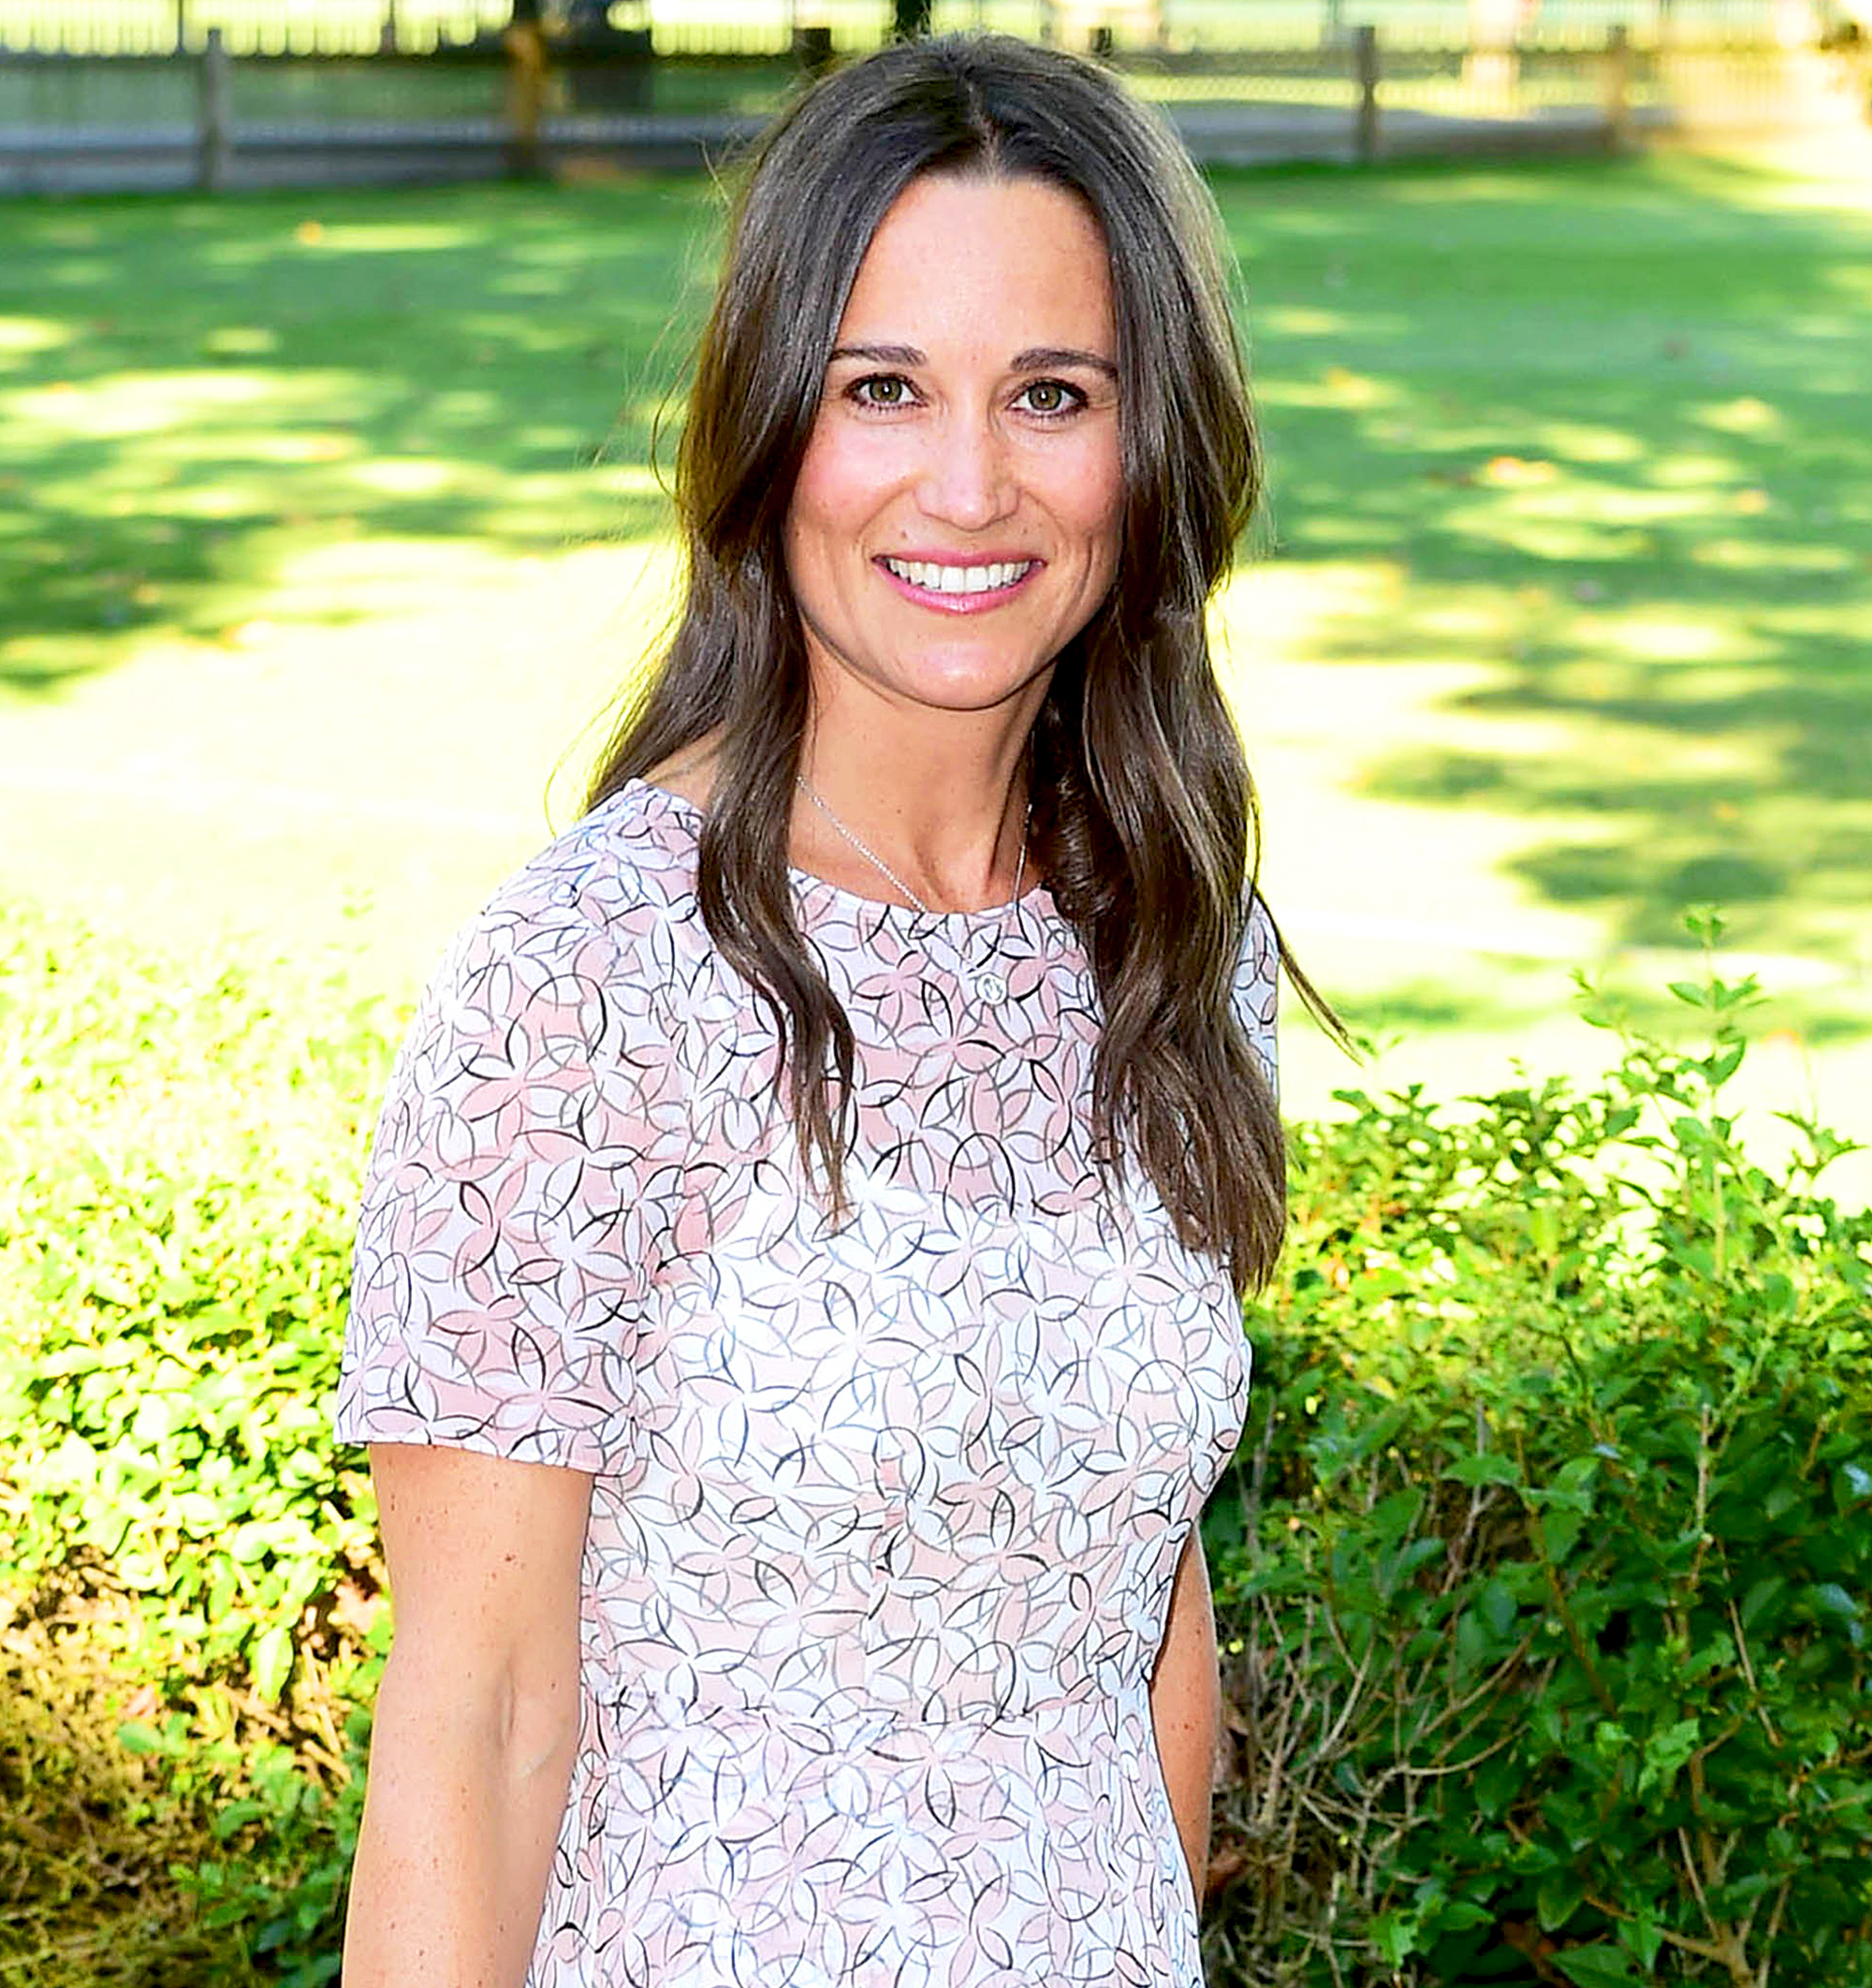 Pippa Middleton reveals she's pregnant